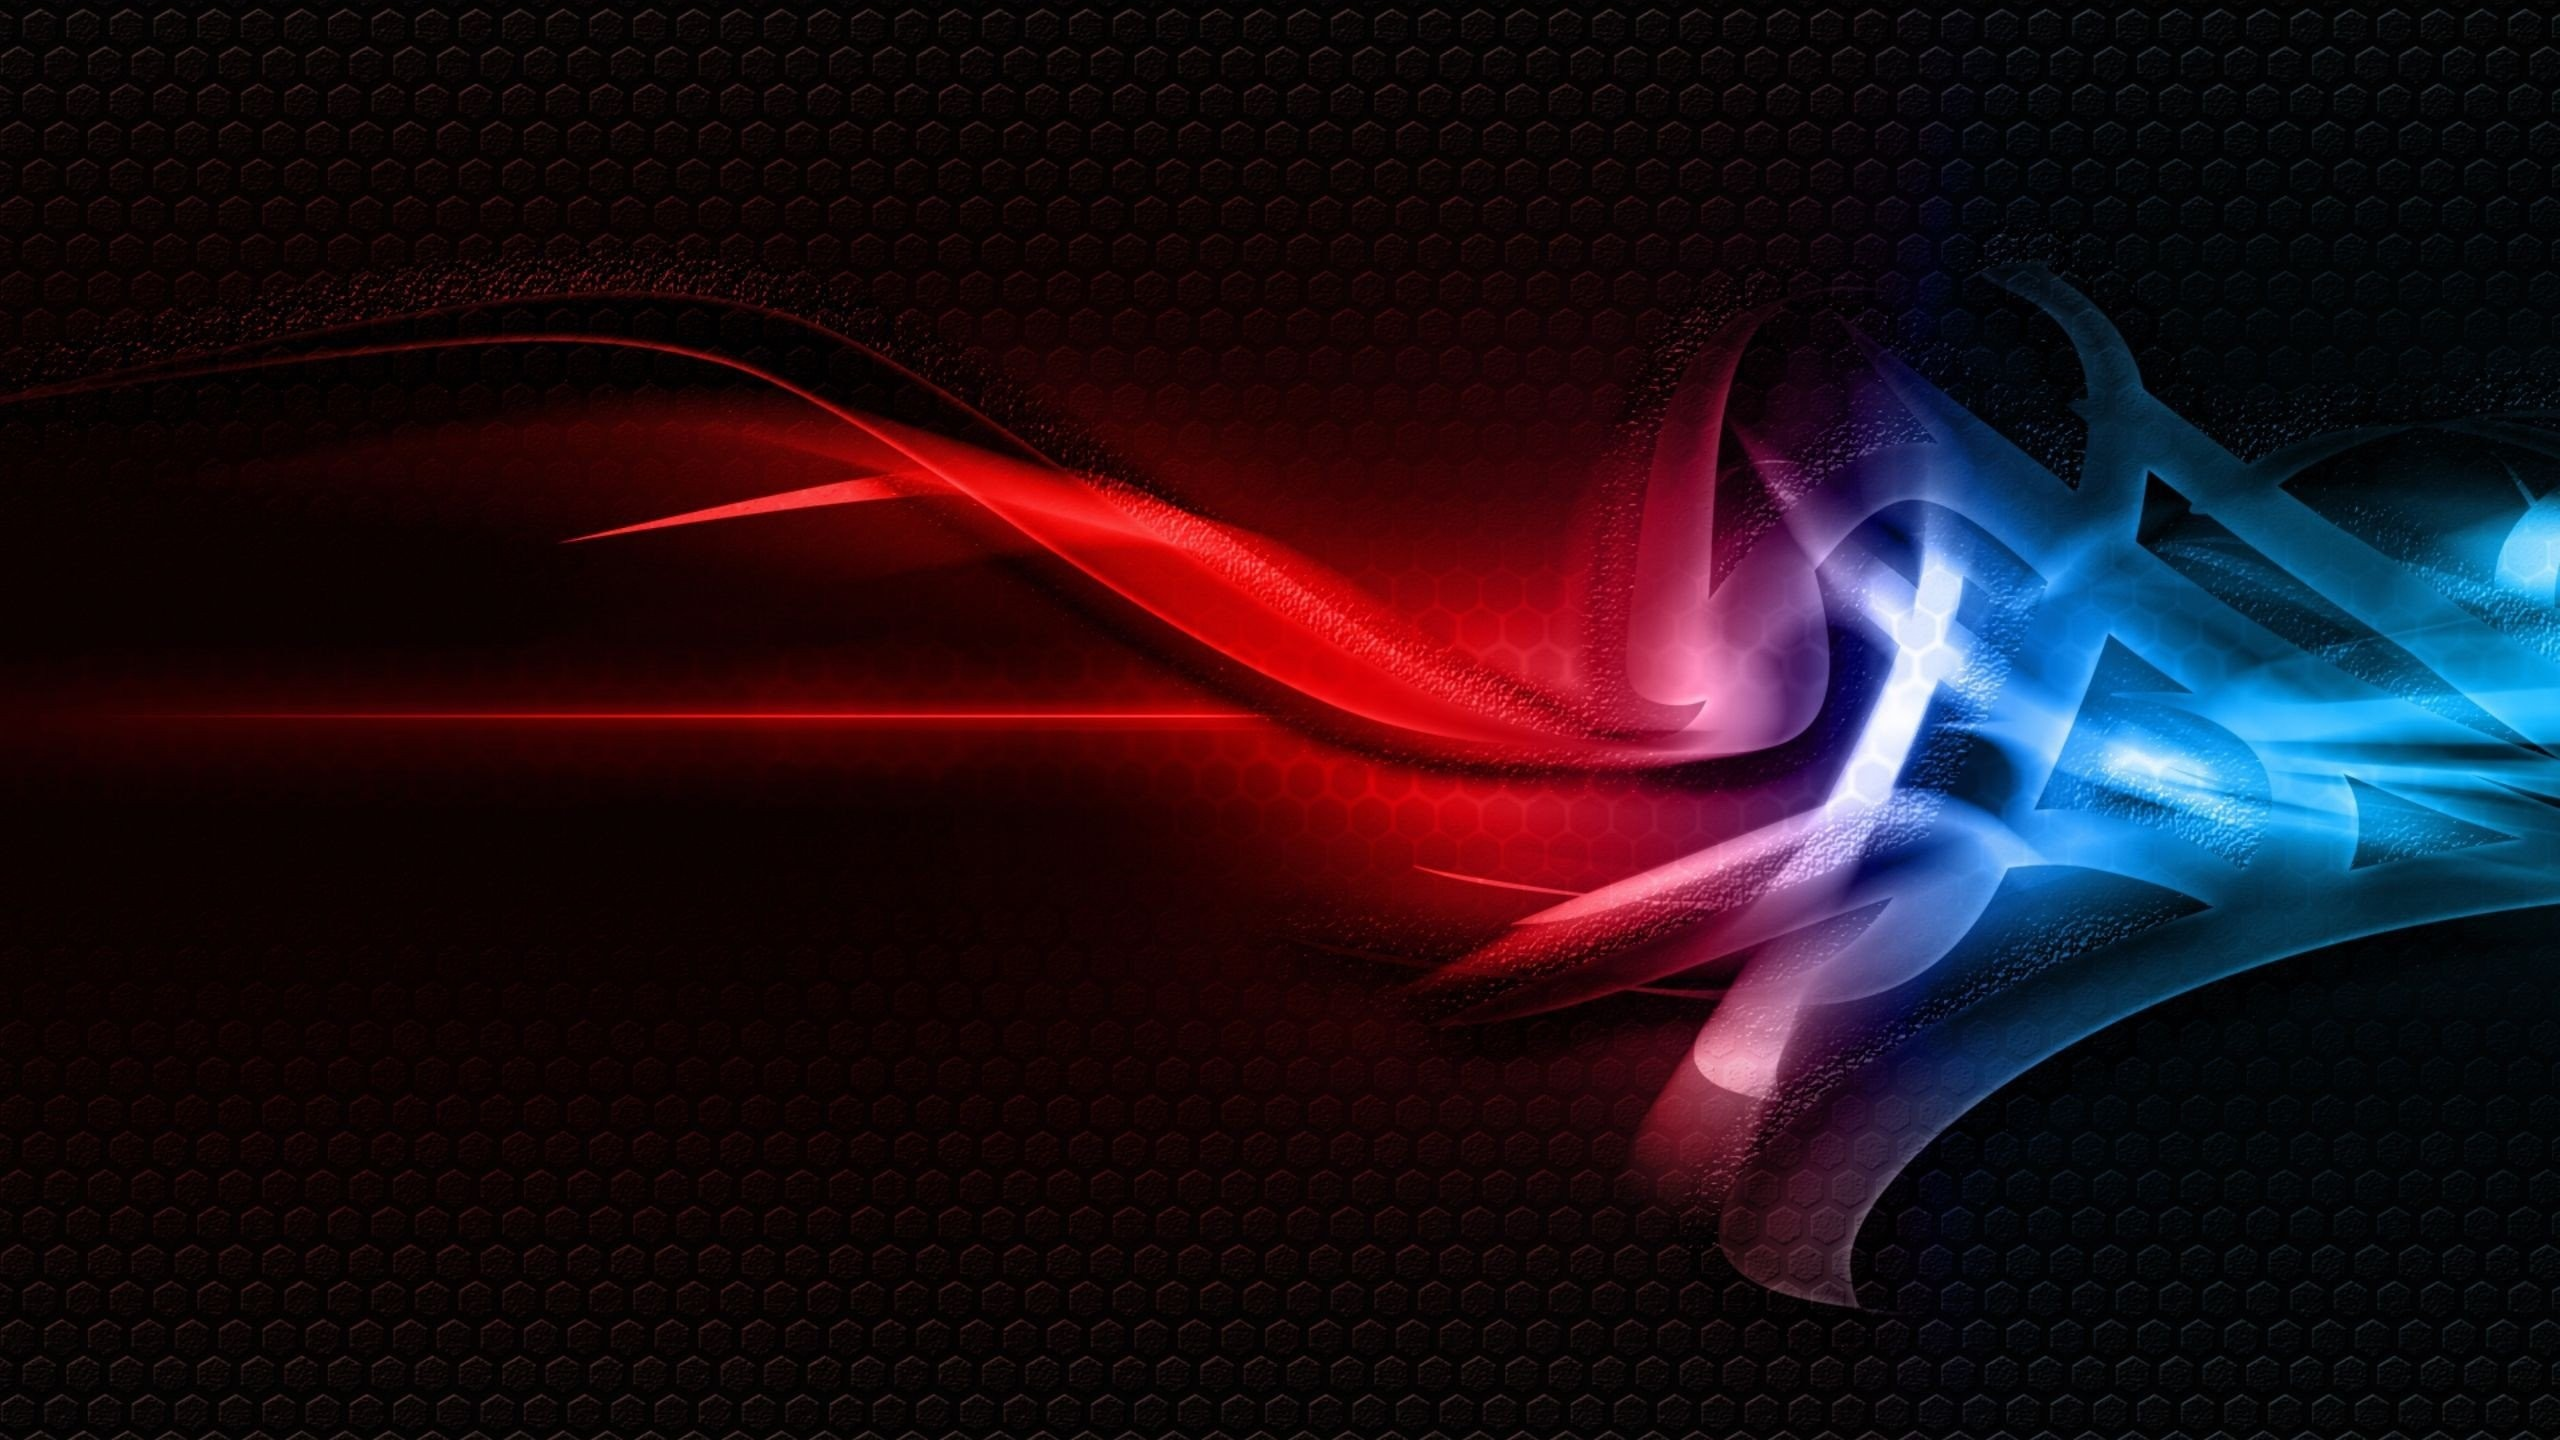 Wallpapers of 3D Abstract Graphics in HD 4K